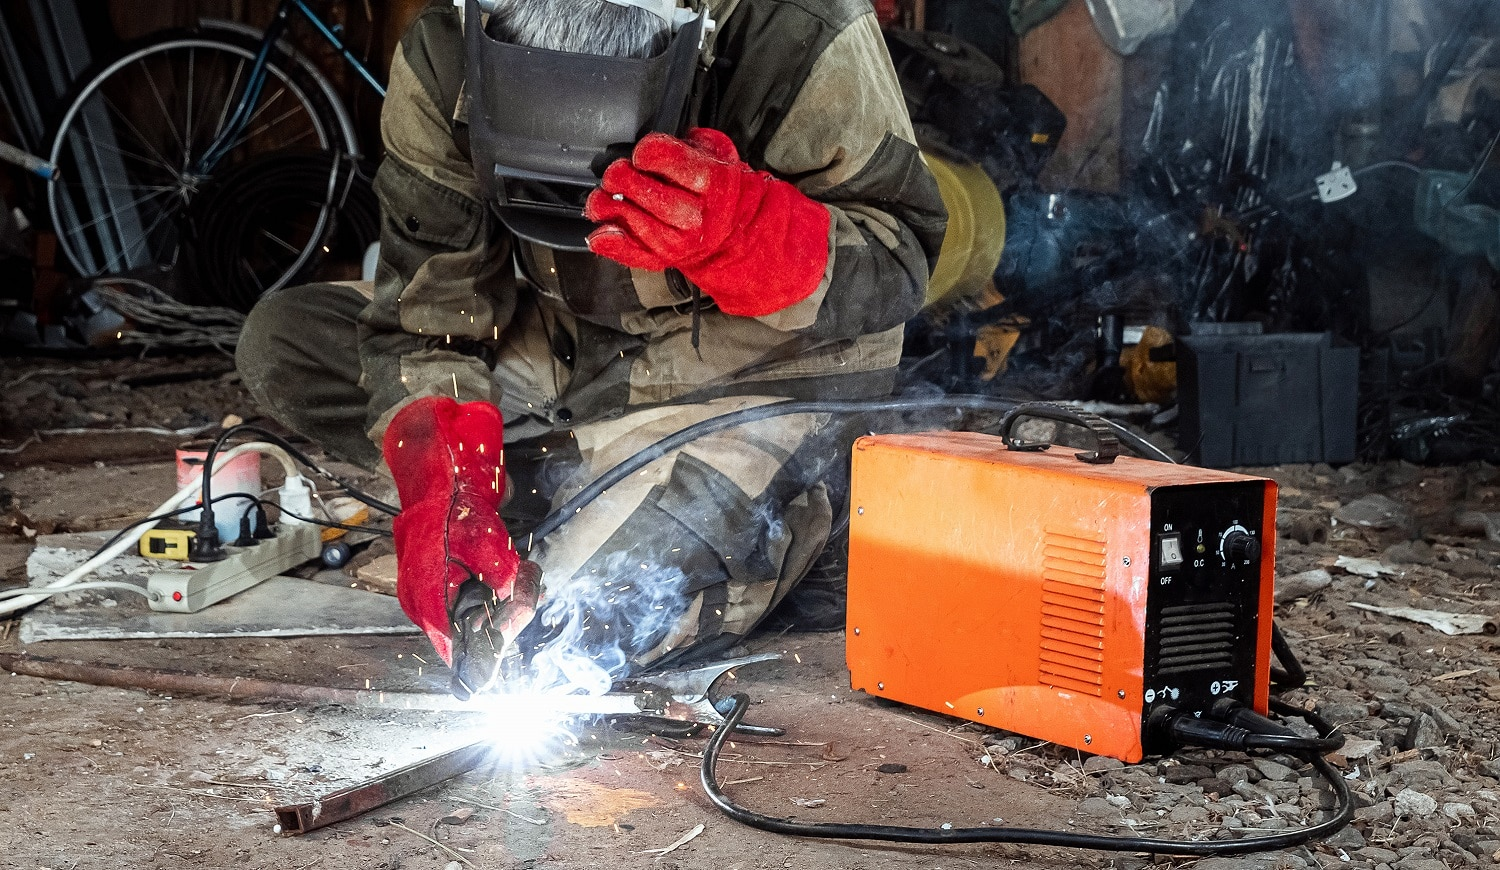 A male welder in a welding mask works with an arc electrode in his garage. Welding, construction, metal work